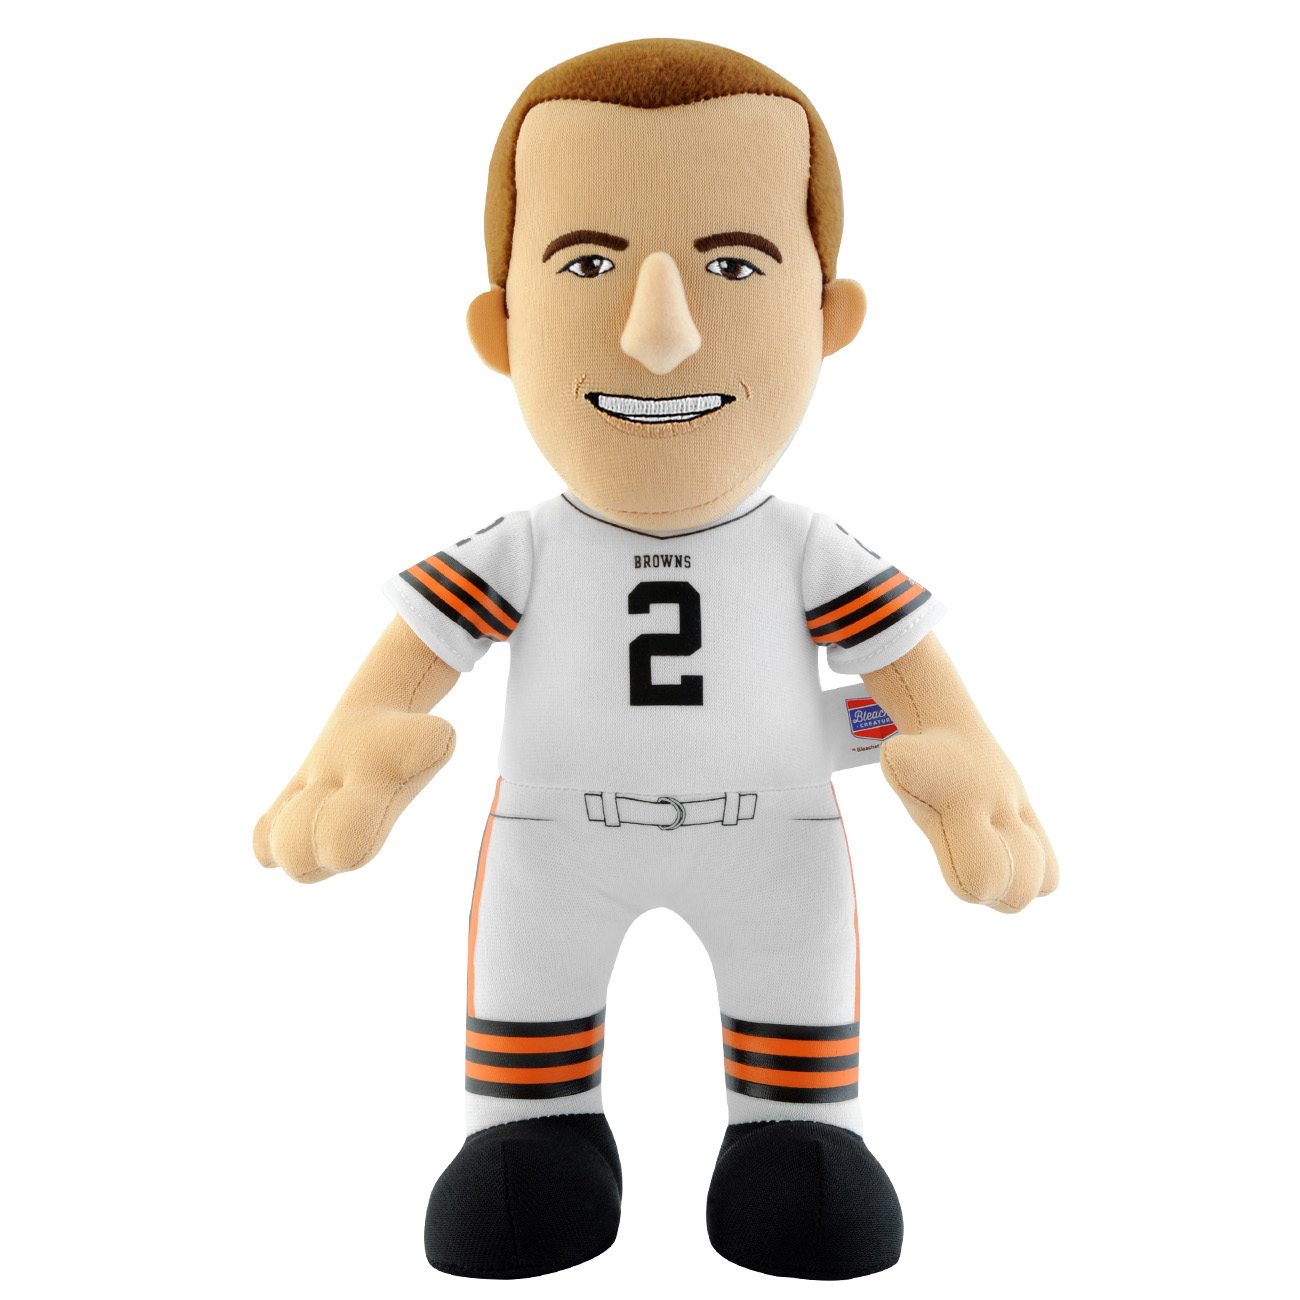 Cleveland Browns Bleacher Creature Plush - Johnny Manziel